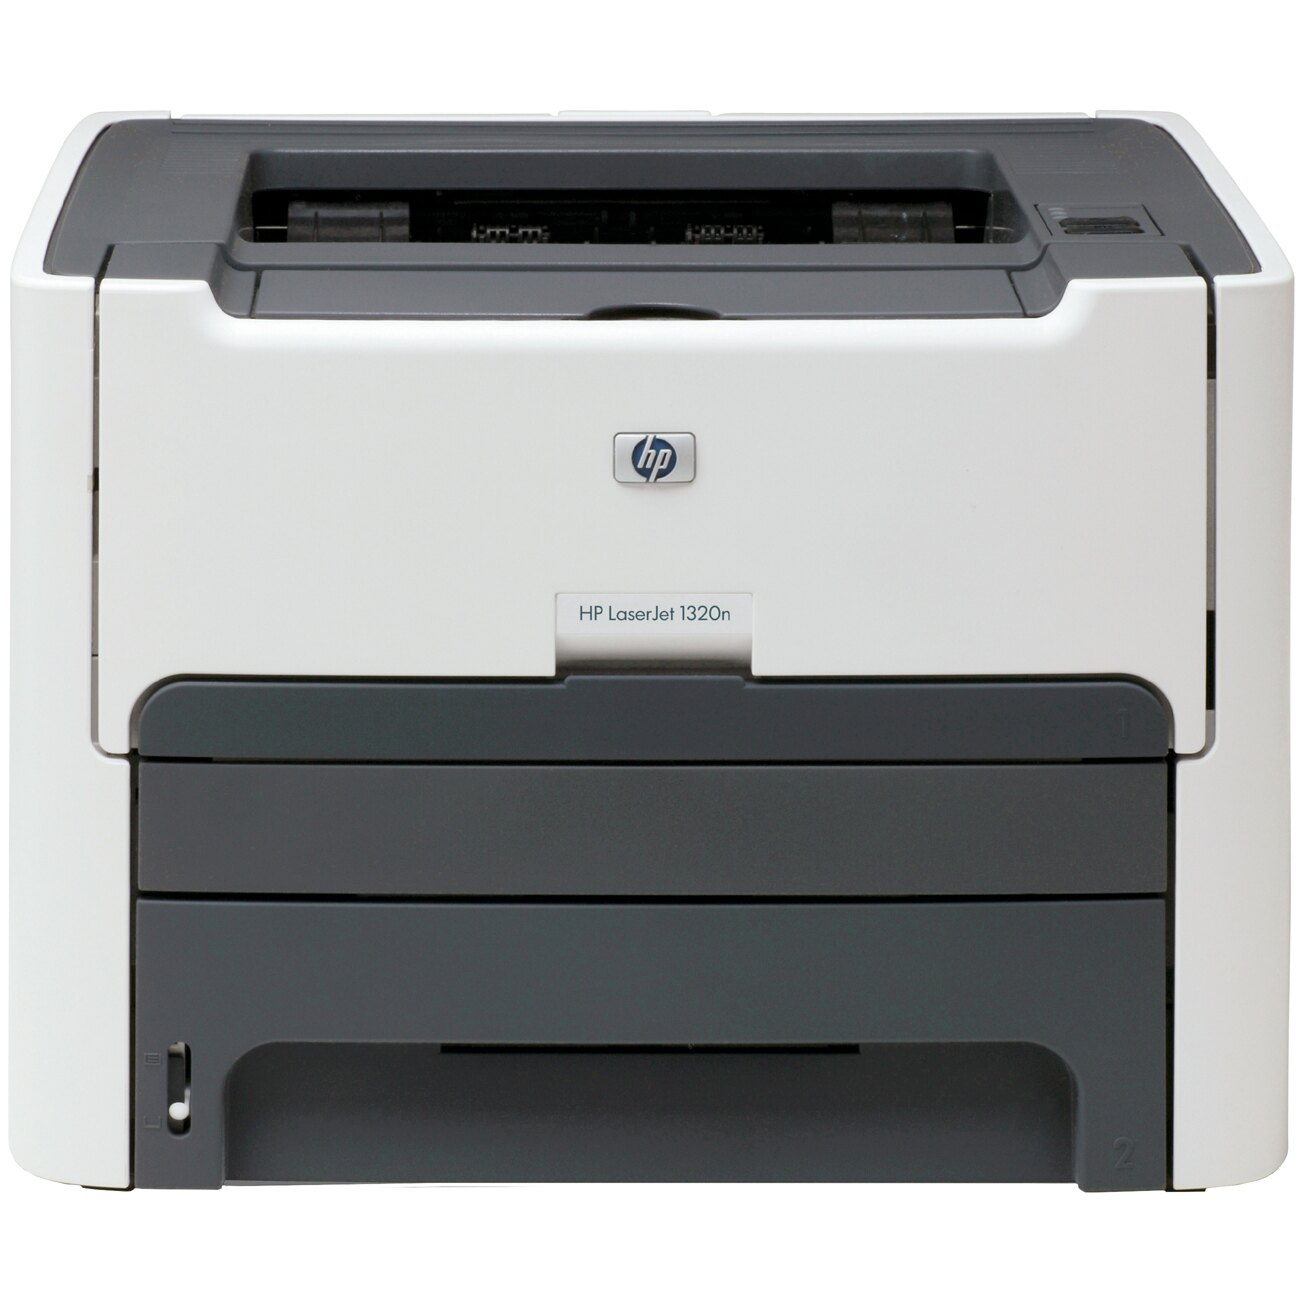 HP LaserJet 1320N Laser Printer - Monochrome - 1200 x 1200 dpi Print - Plain Paper Print - Desktop - 22 ppm Mono Print - Legal, Executive, Index Card, Envelope No. 10, Monarch Envelope, Custom Size - 250 sheets Standard Input Capacity - 10000 Duty Cycle - 0